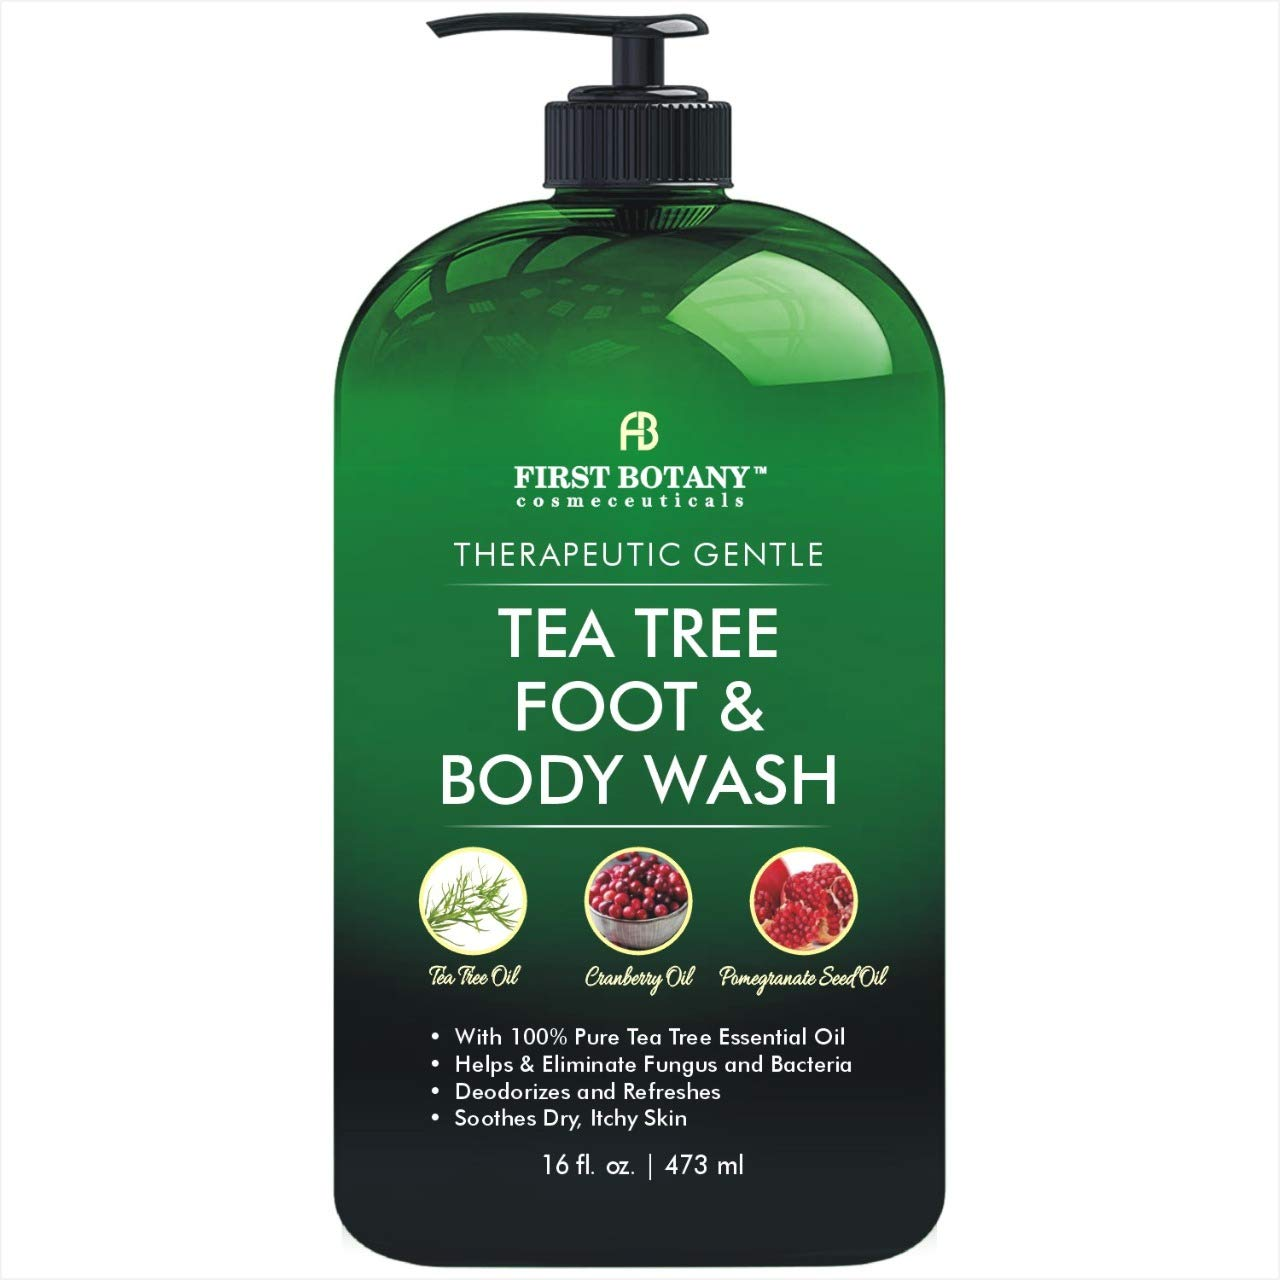 Antifungal Tea Tree Oil Body Wash - HUGE 16 OZ - 100% Pure & Natural